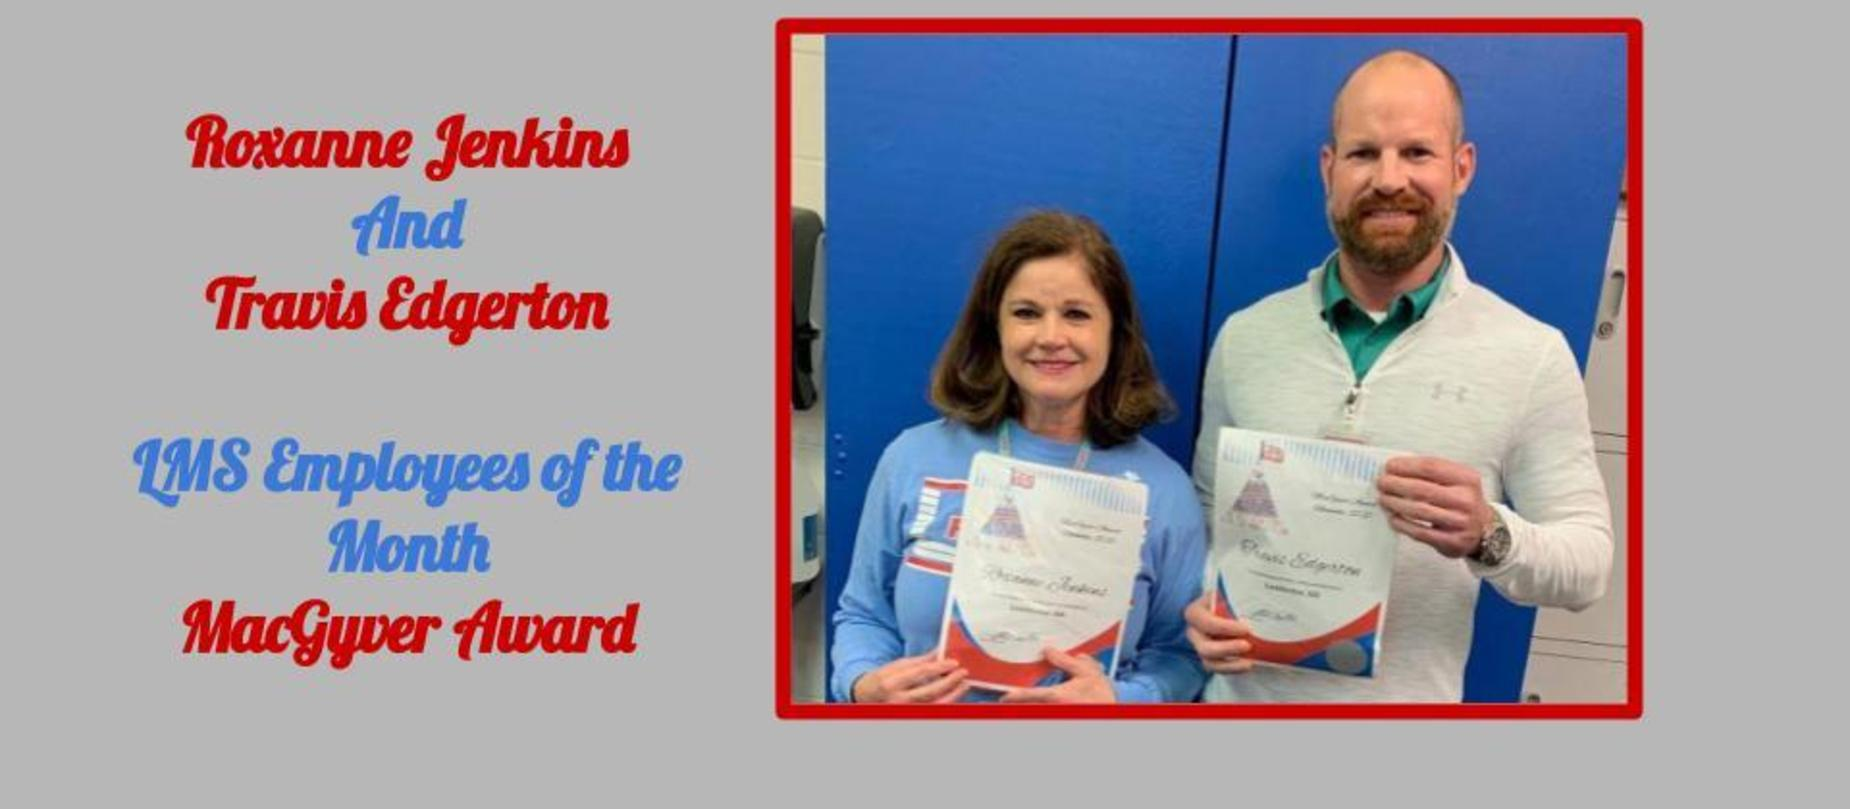 Roxanne Jenkins and Travis Edgerton November Employees of the Month